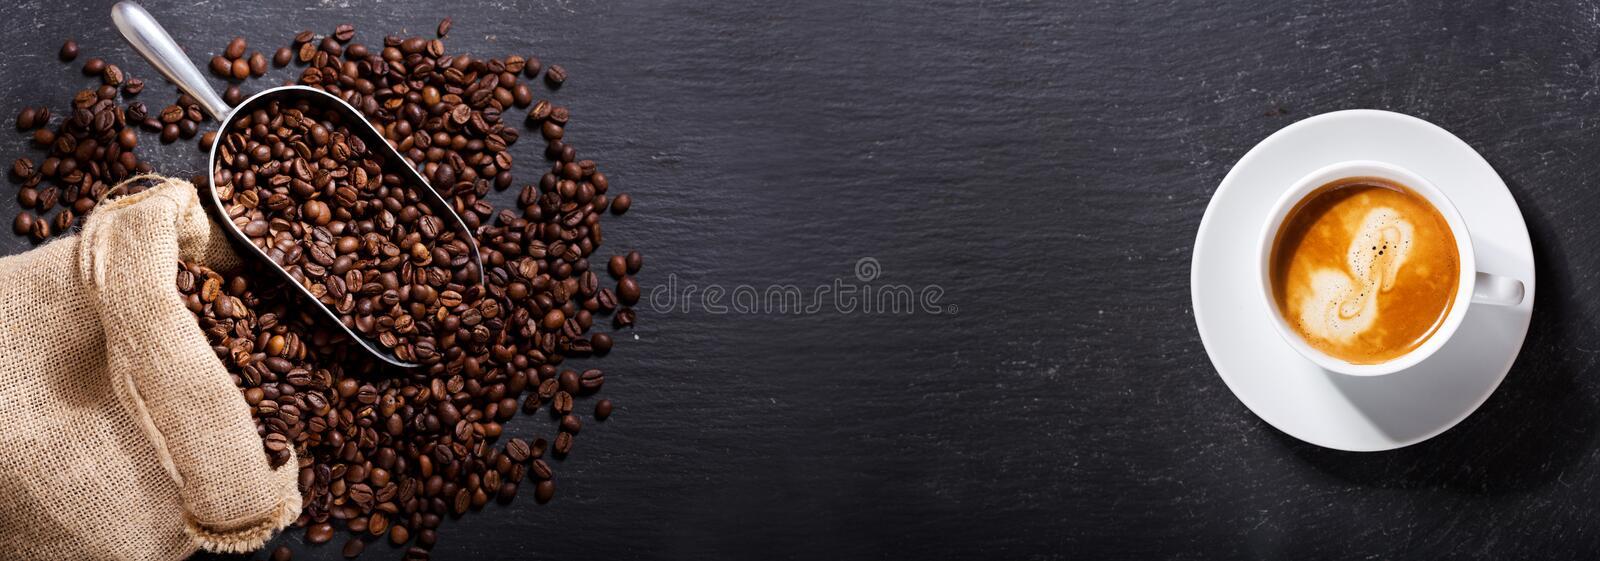 Cup of coffee and coffee beans in a sack, top view royalty free stock photo